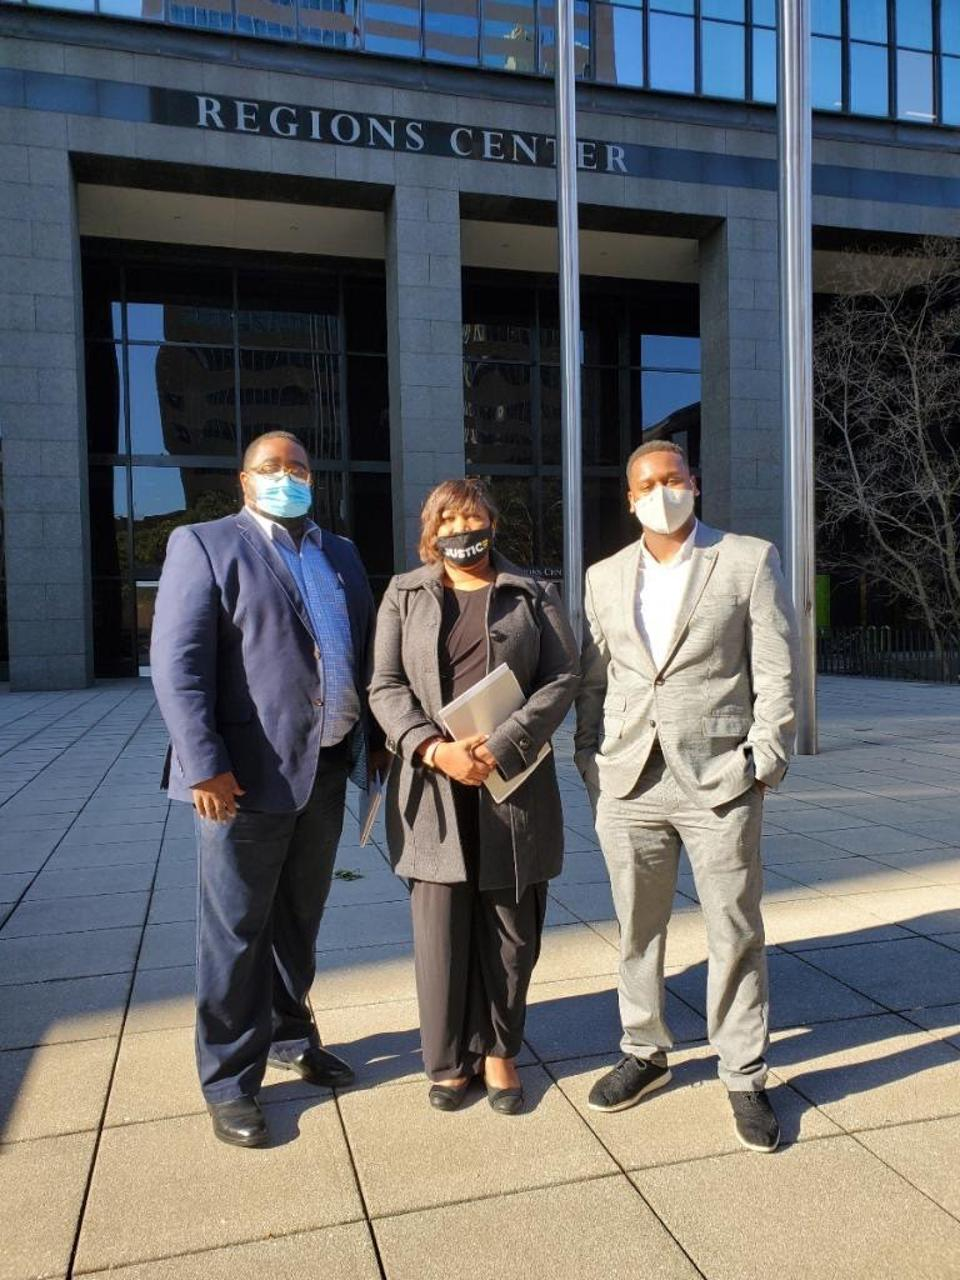 Lamar Black, Cara McClure and Joshua Thompson after meeting with Regions Bank